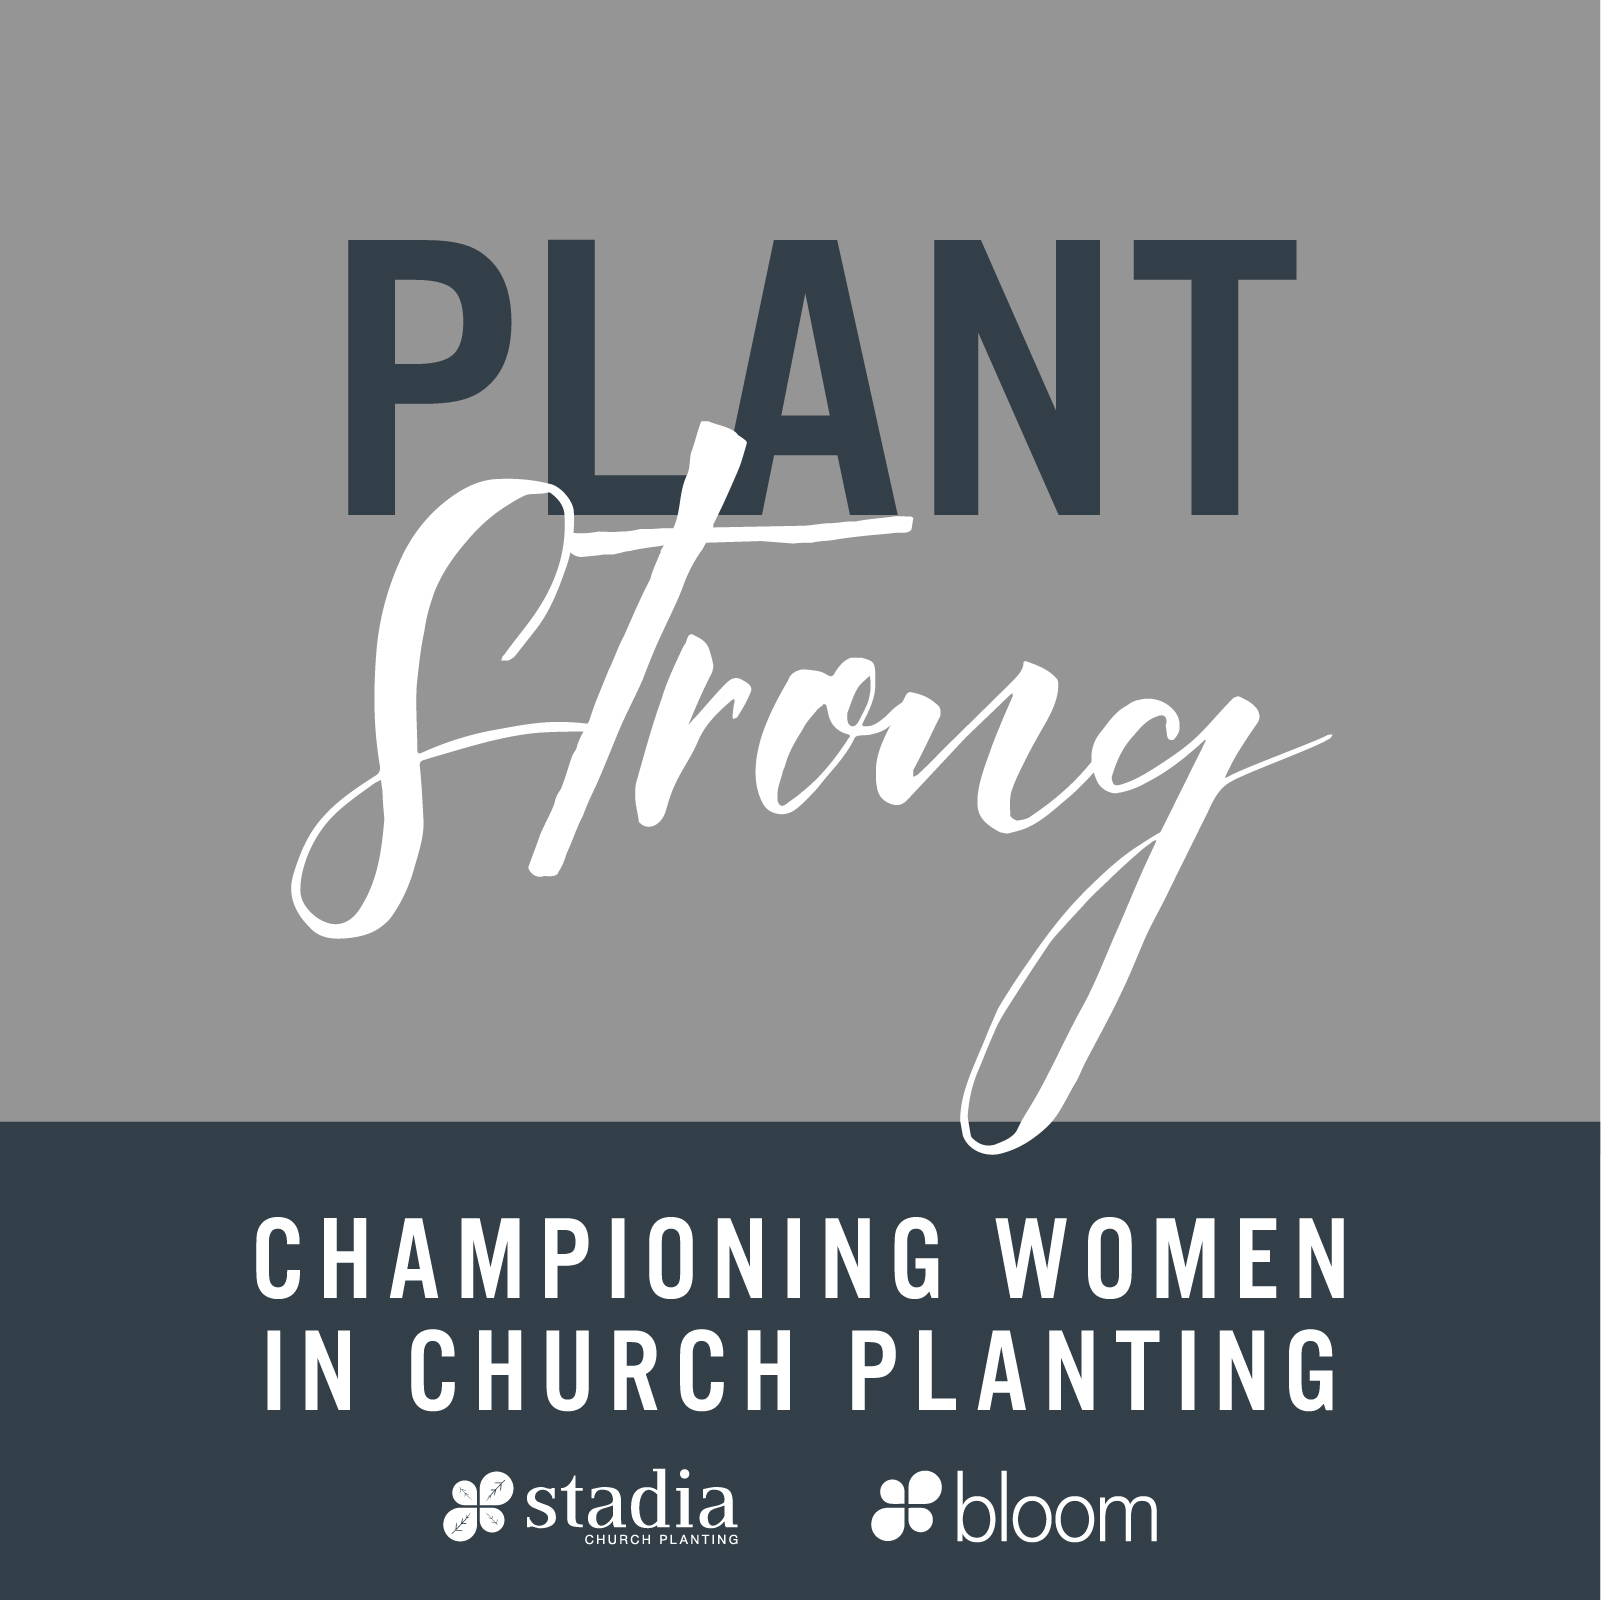 Episode #1 - Plant Strong: Accepting the Call with Vanessa Pugh